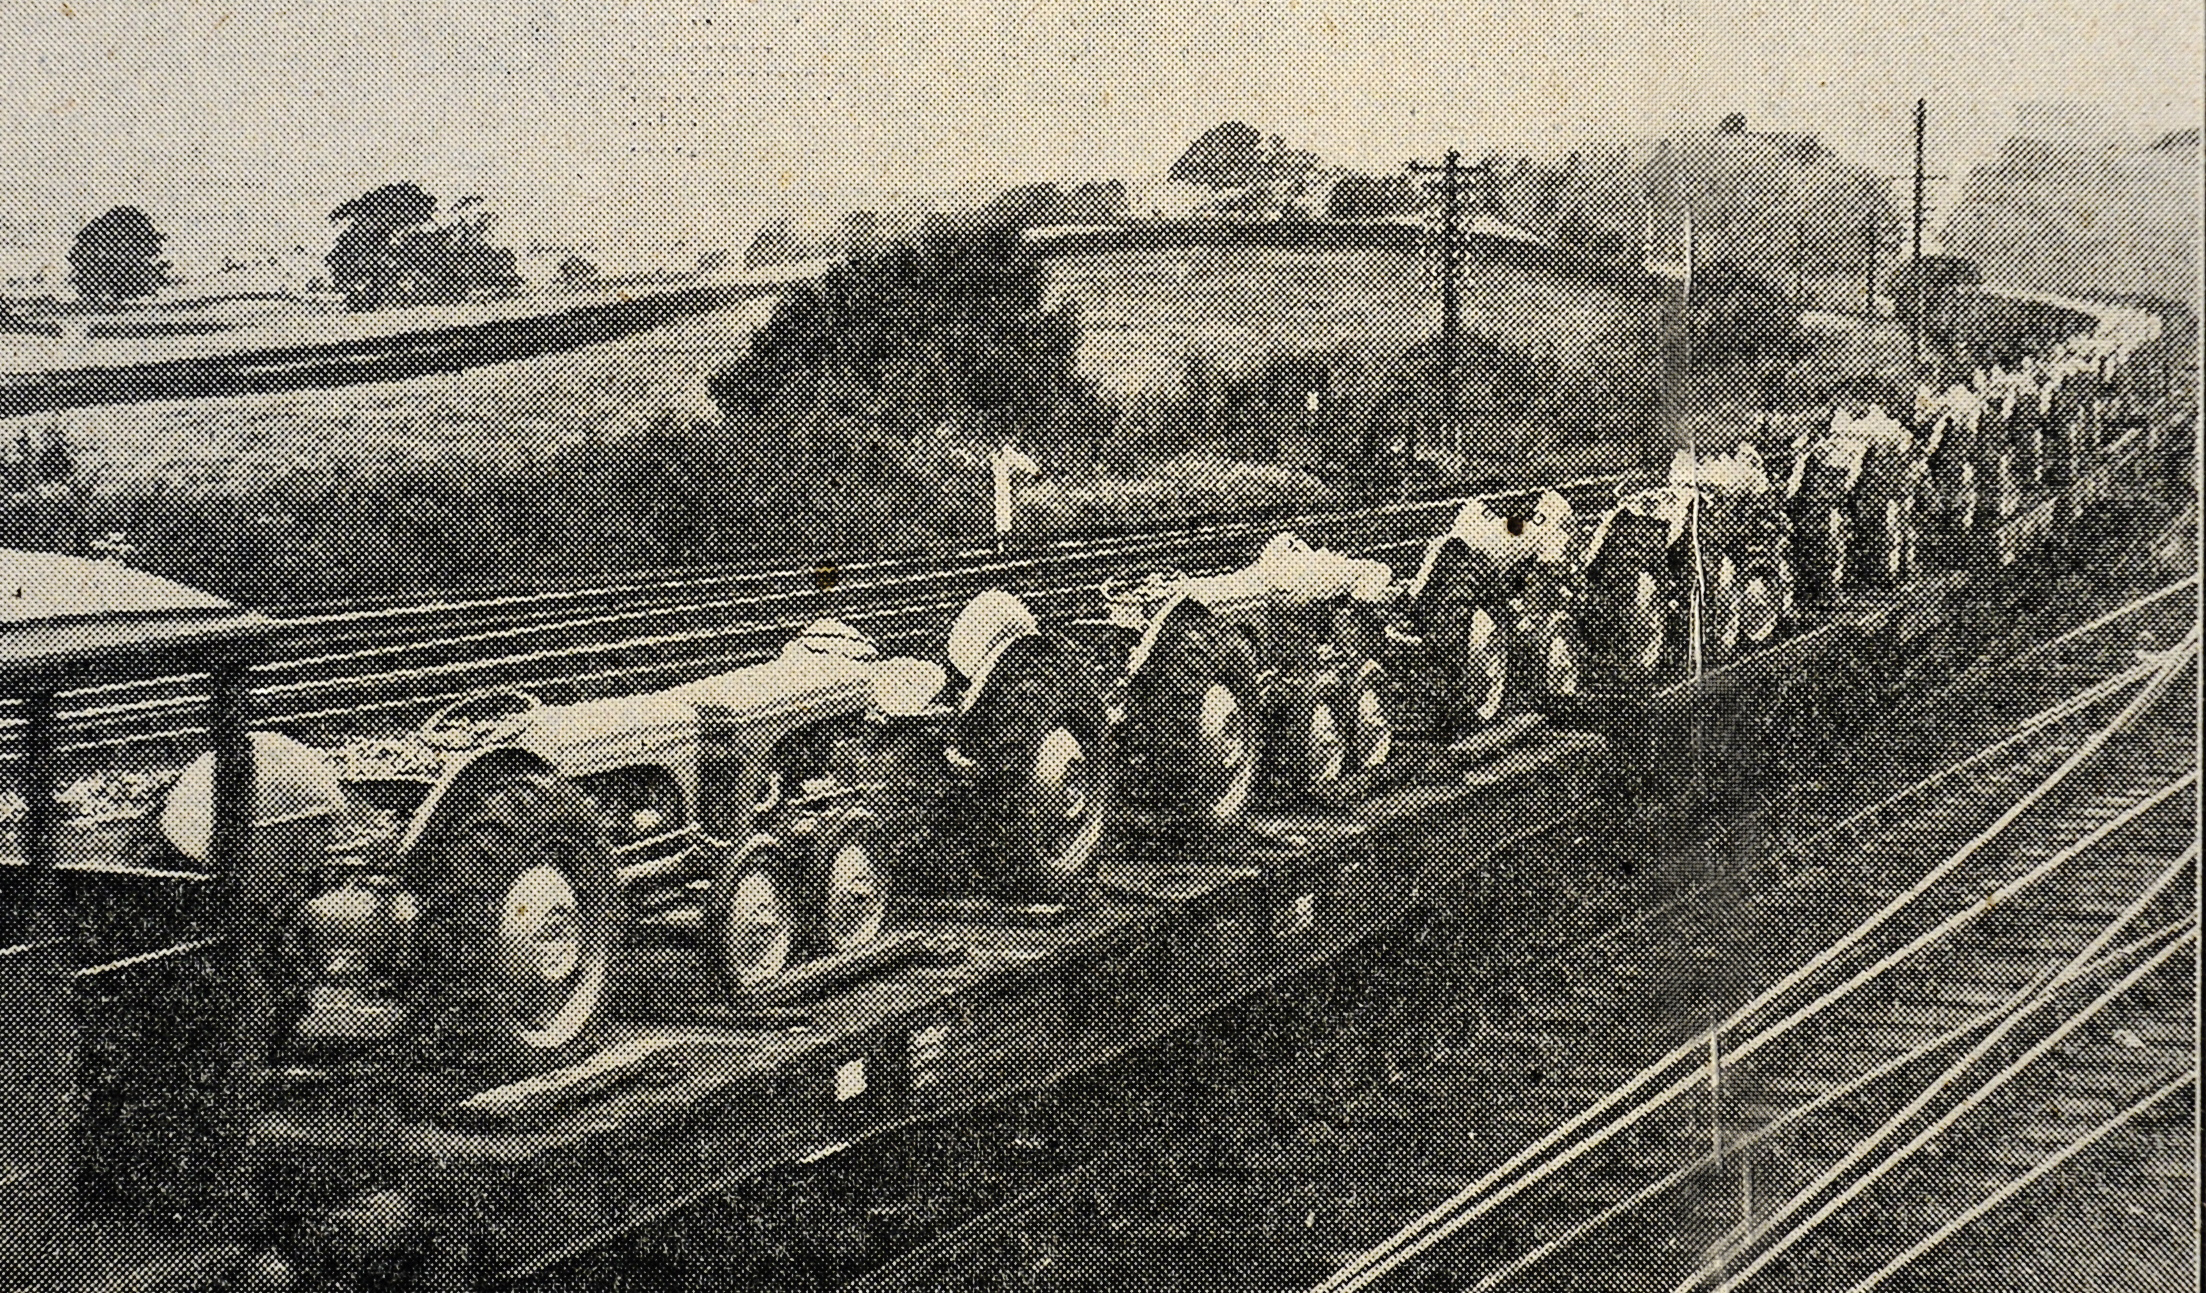 A special train carrying 57 tractors from Coventry is pictured approaching Kendal, the distribution centre for Lancashire and Westmorland in 1947